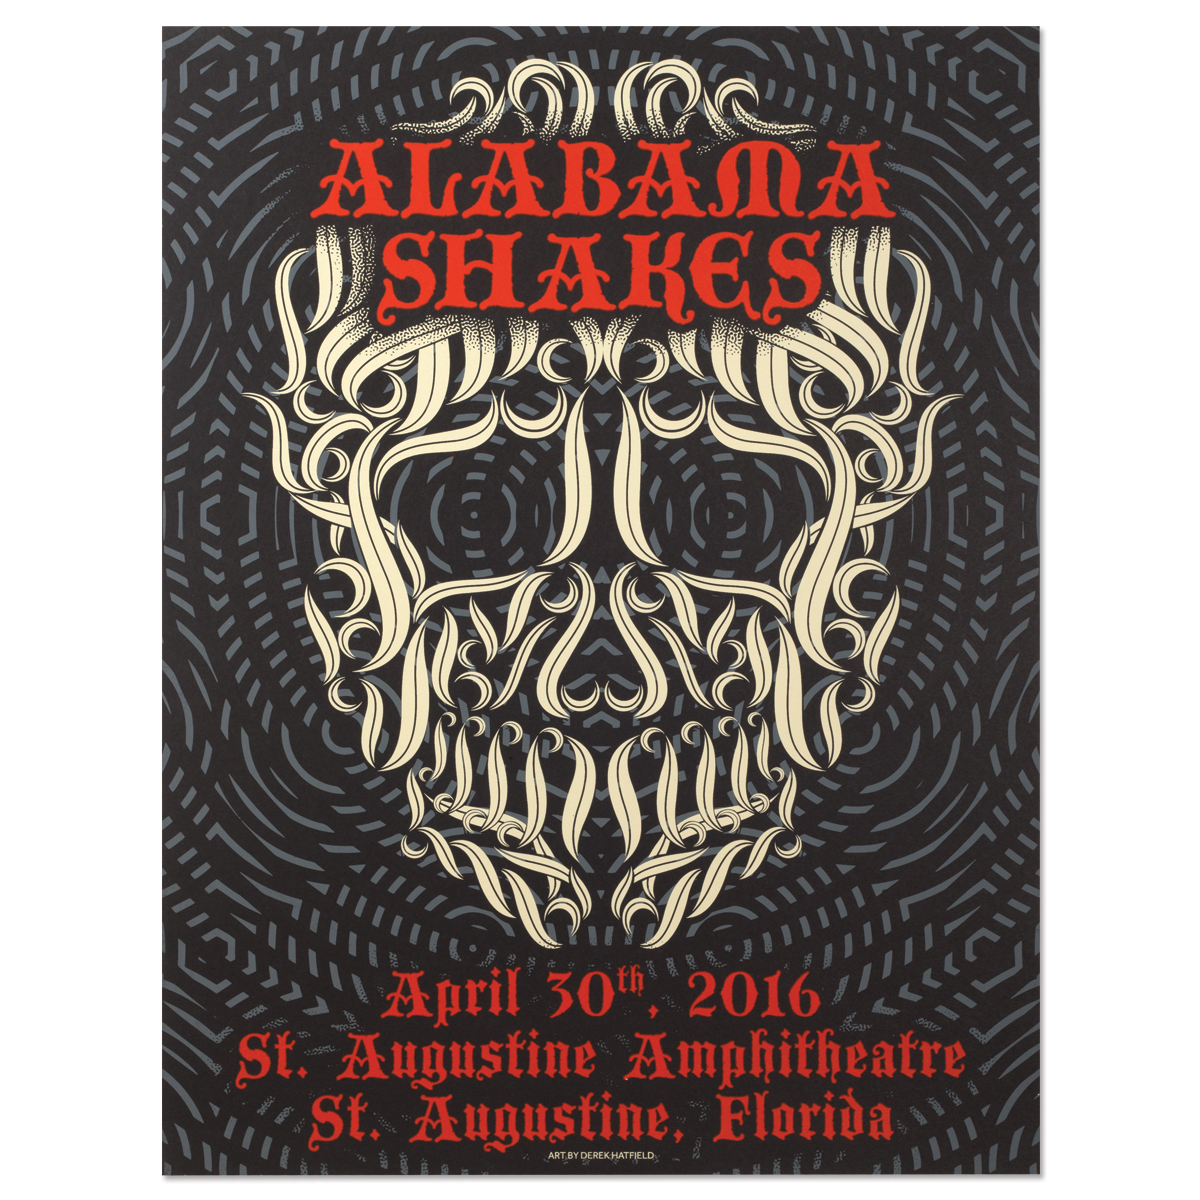 Alabama Shakes Show Poster - St. Augustine, FL 4/30/2016